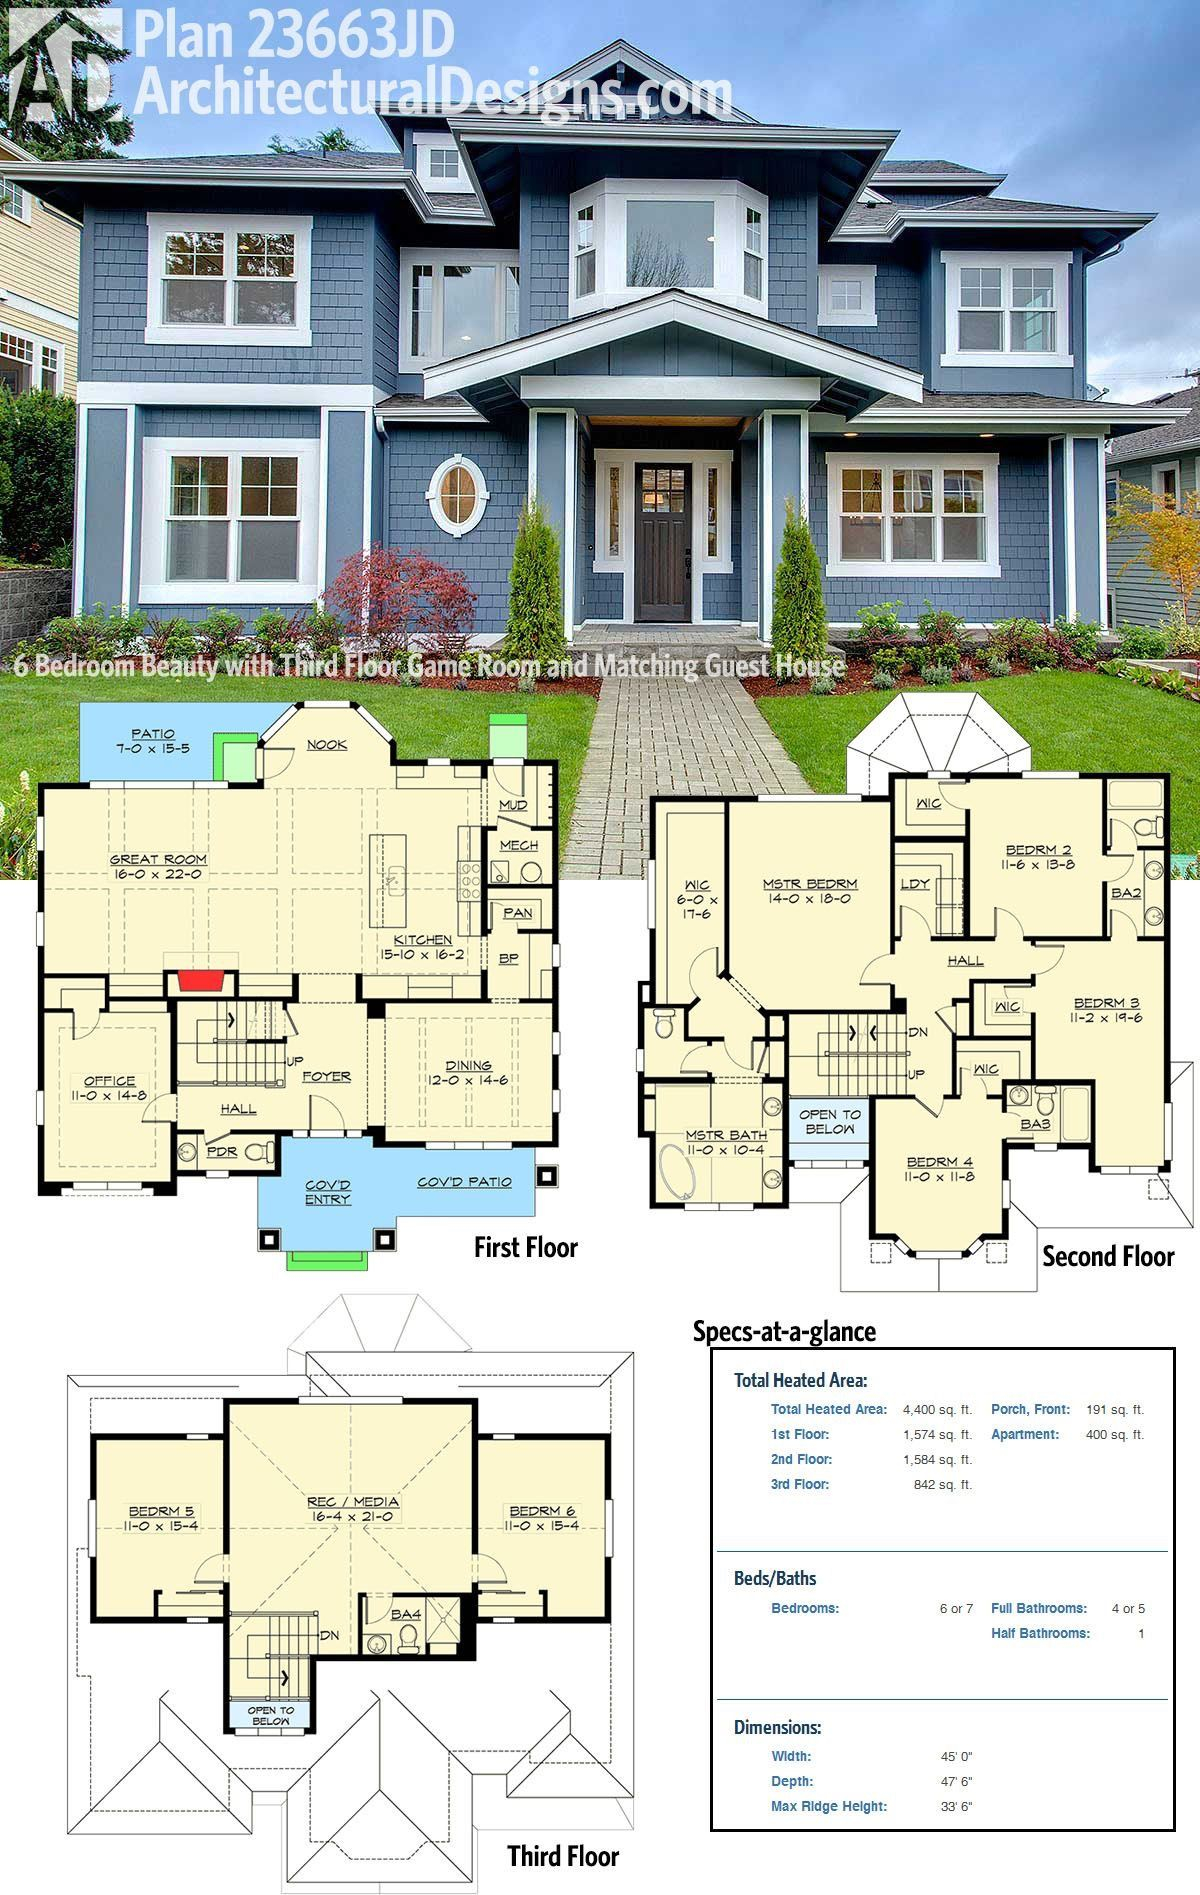 Amazing house plan!! Love it Craftsman house plans